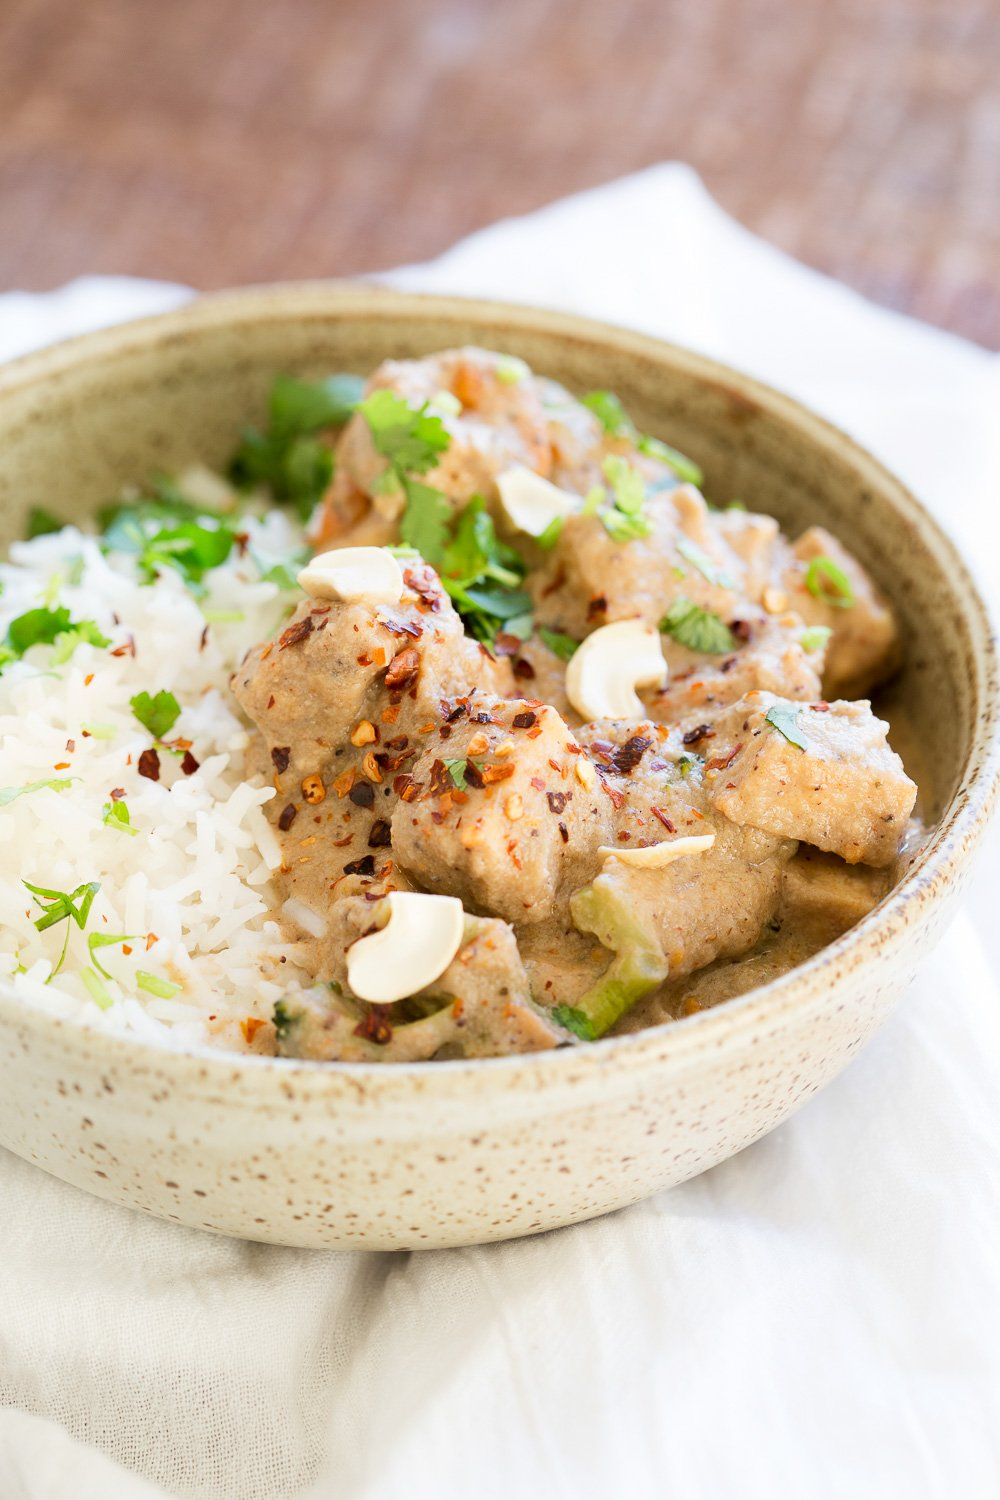 Instant Pot Vegan Korma Recipe with White Korma Sauce. This Creamy Veggies and Tofu Korma is made in Instant Pot Pressure cooker. Stovetop option. #Vegan #Glutenfree #Recipe #VeganRicha Soyfree, Nutfree option